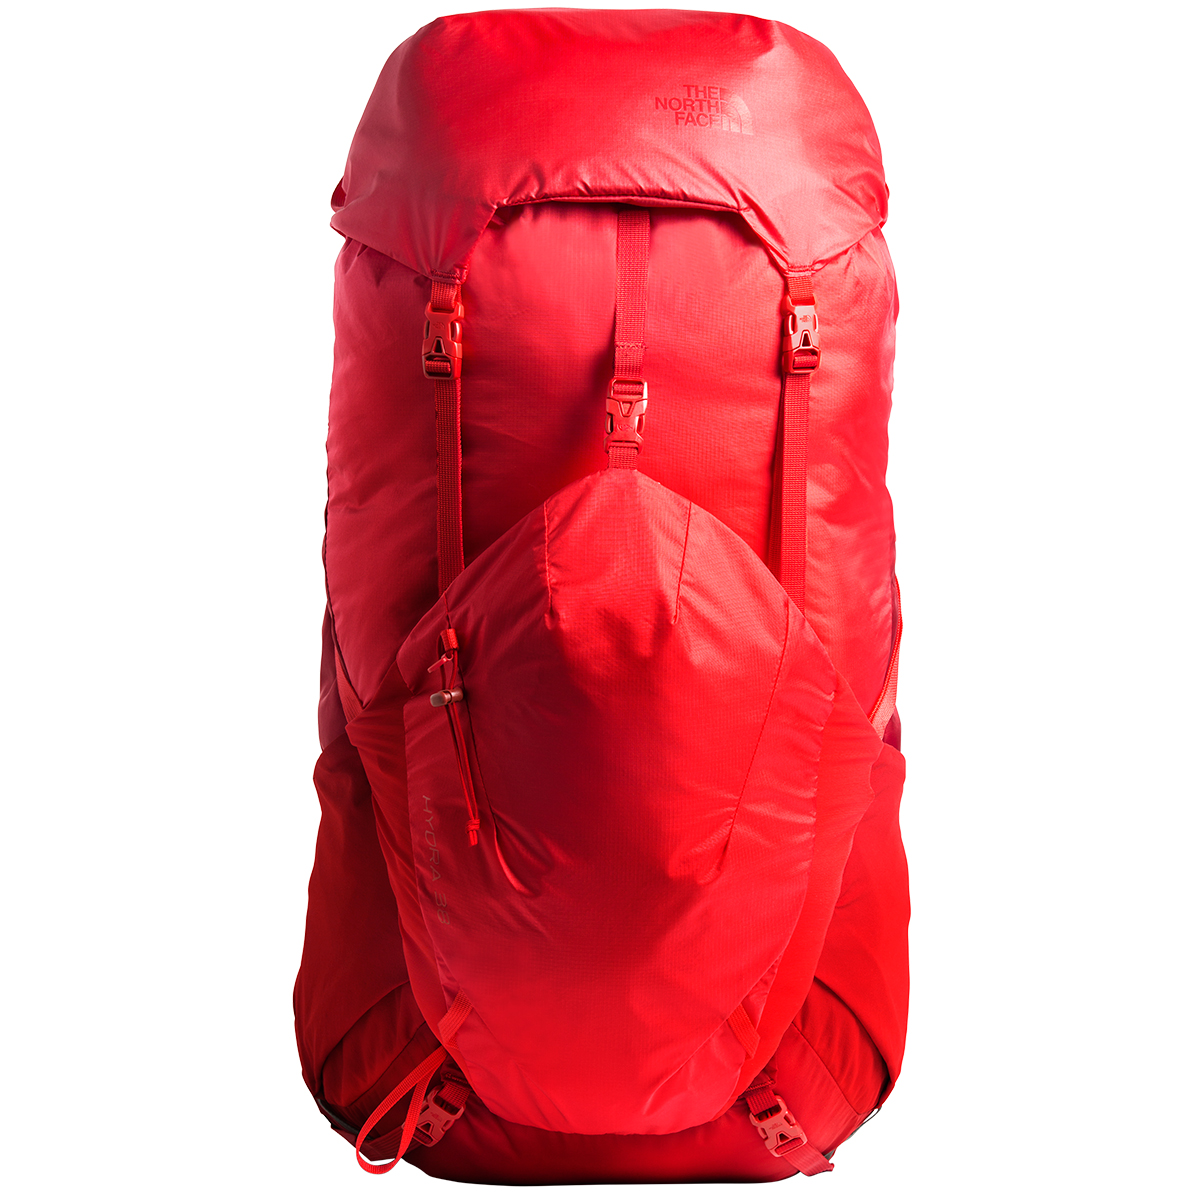 The North Face Women's Hydra 38 Pack, Past Season